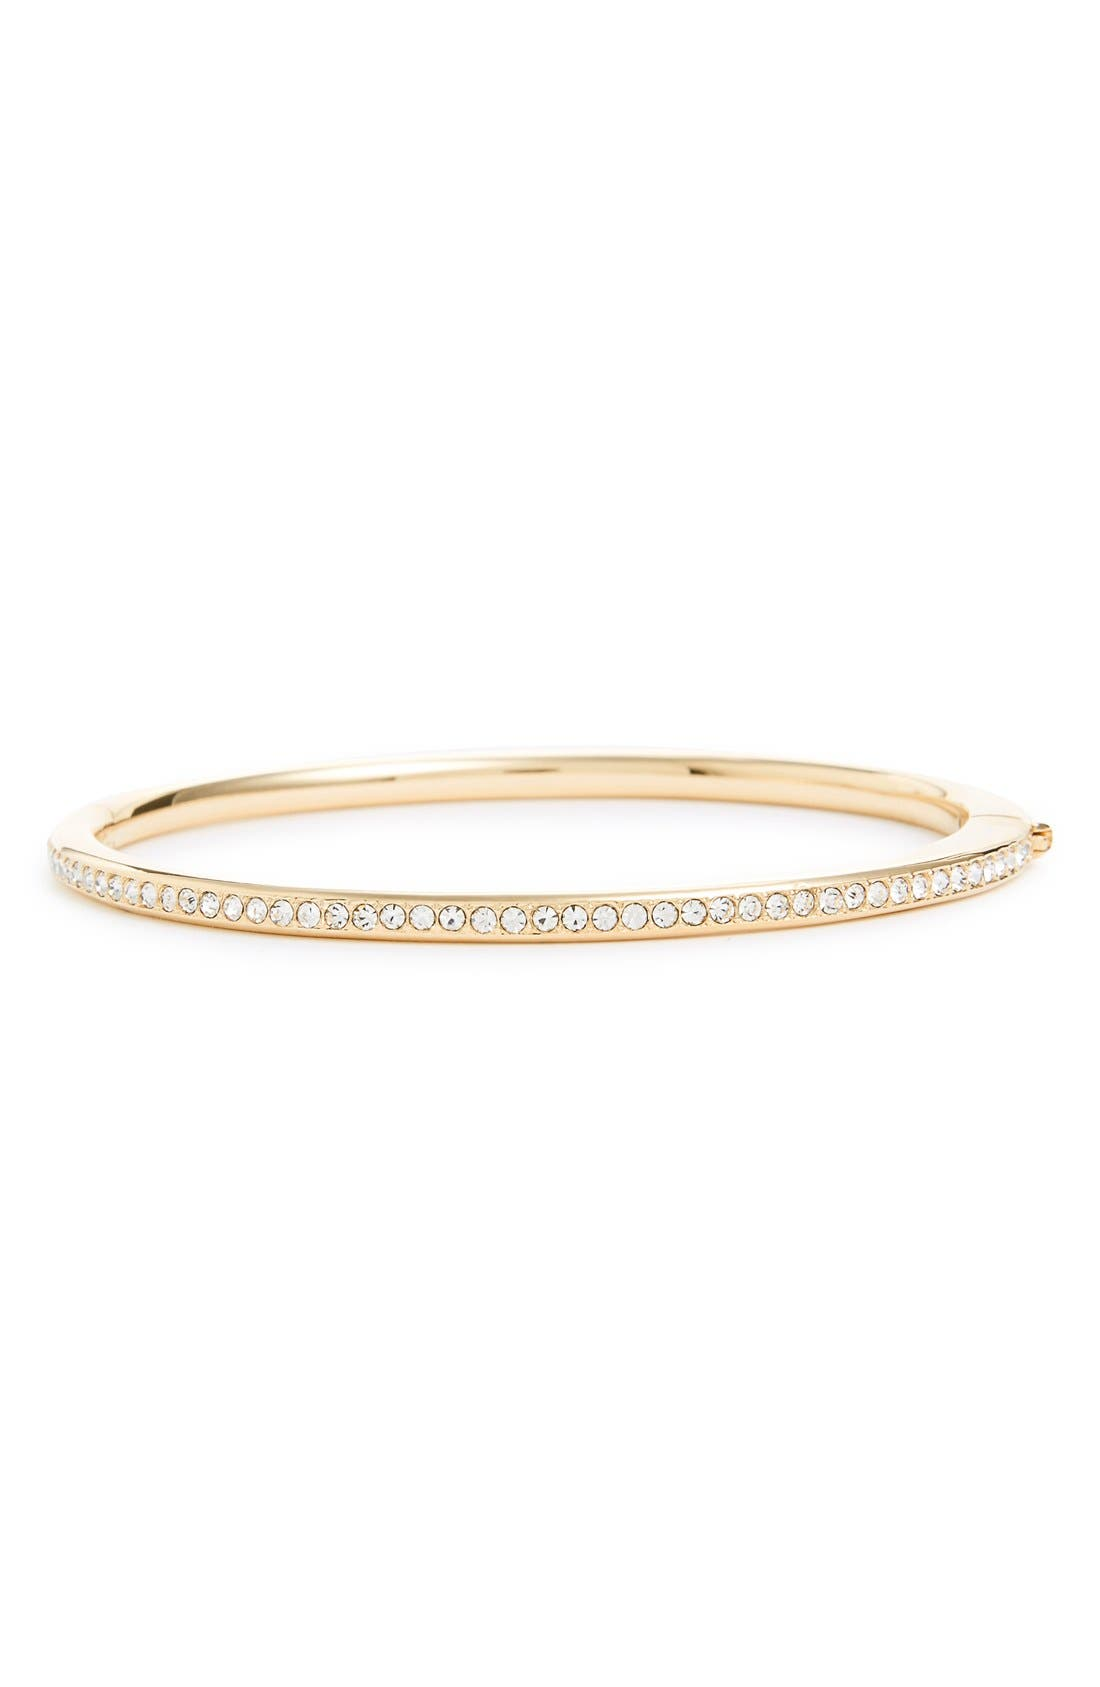 Channel Set Crystal Hinged Bangle,                         Main,                         color, Gold/ Clear Crystal